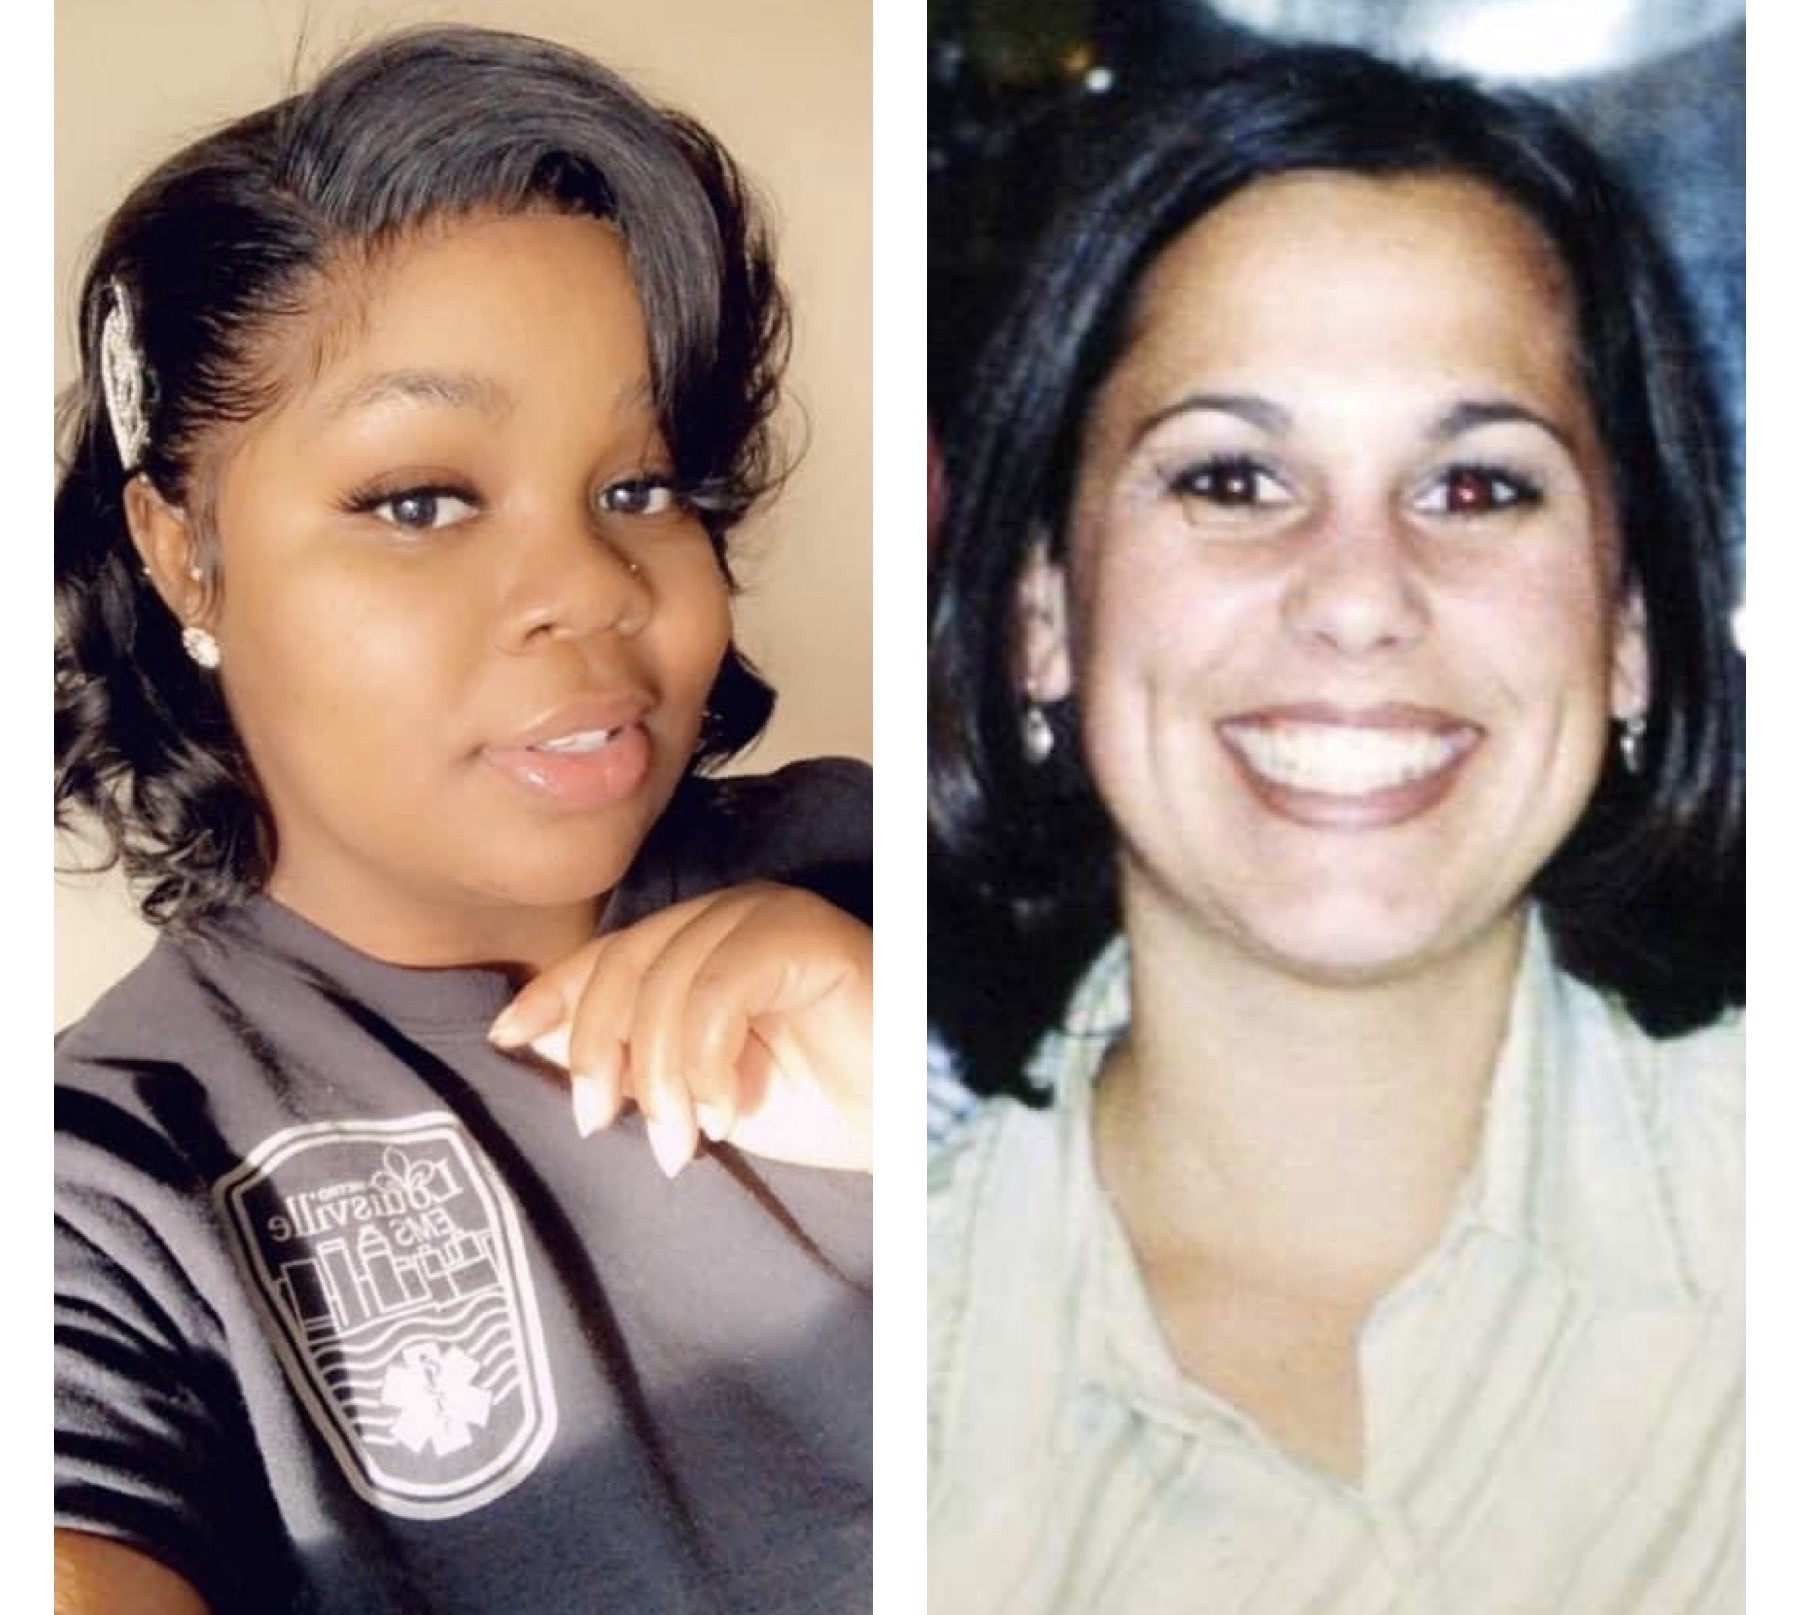 Laci Peterson and Breonna Taylor: A Tale of Two Victims With Unbalanced Scales of Justice